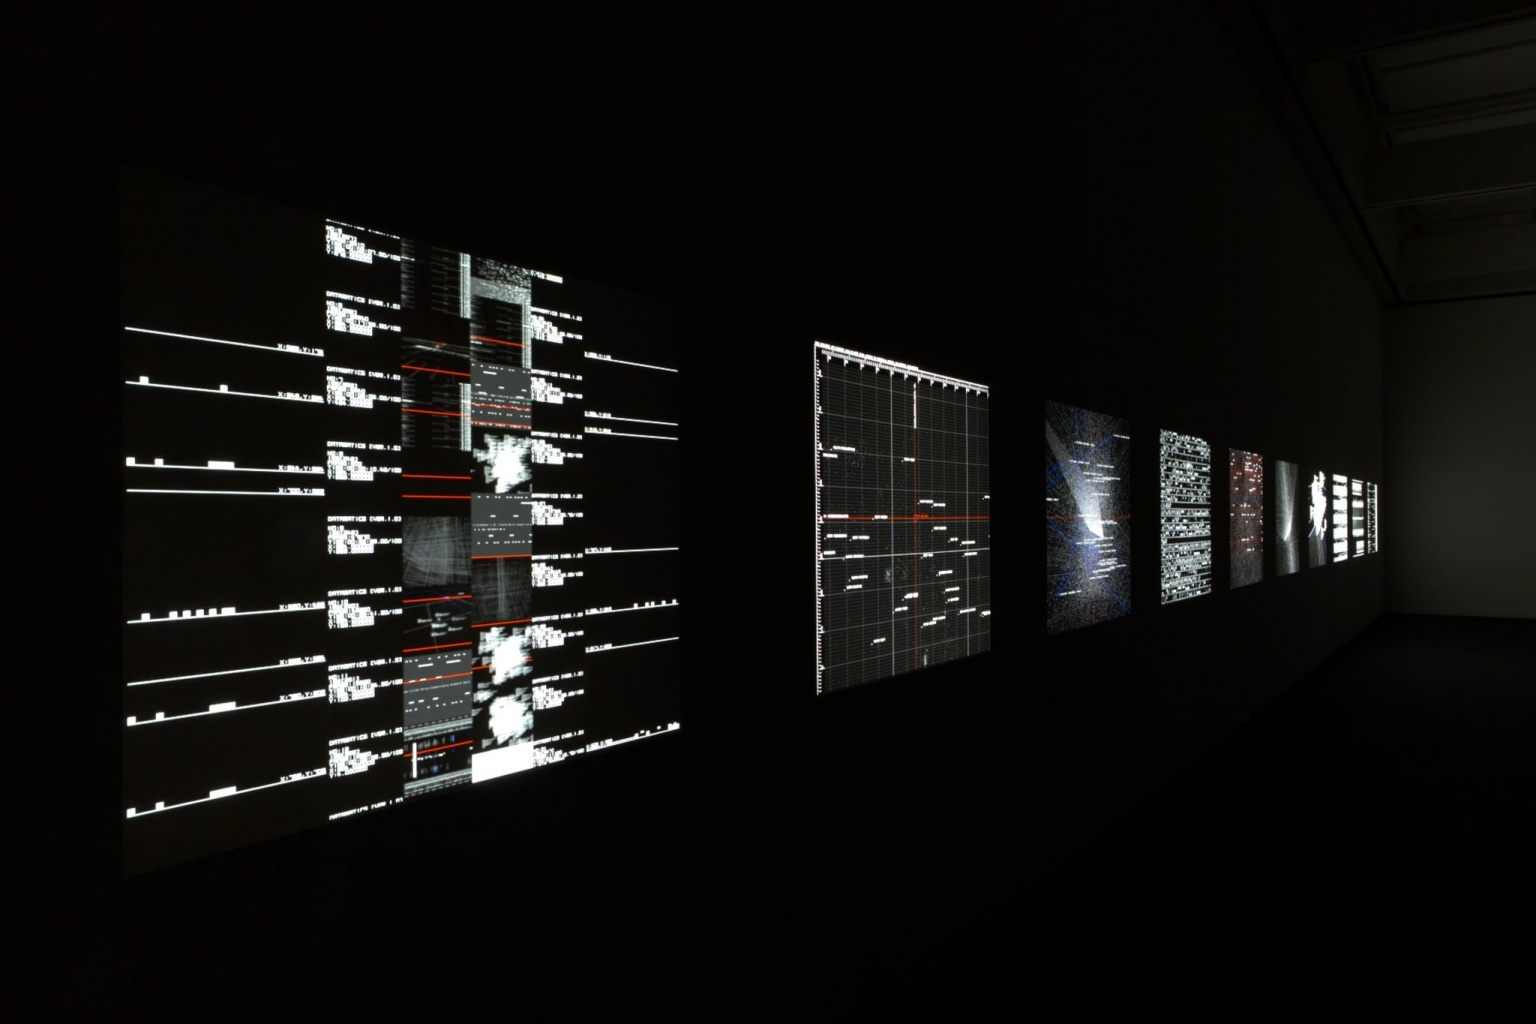 Physical reality and information architecture by Ryoji Ikeda at Almine Rech Paris